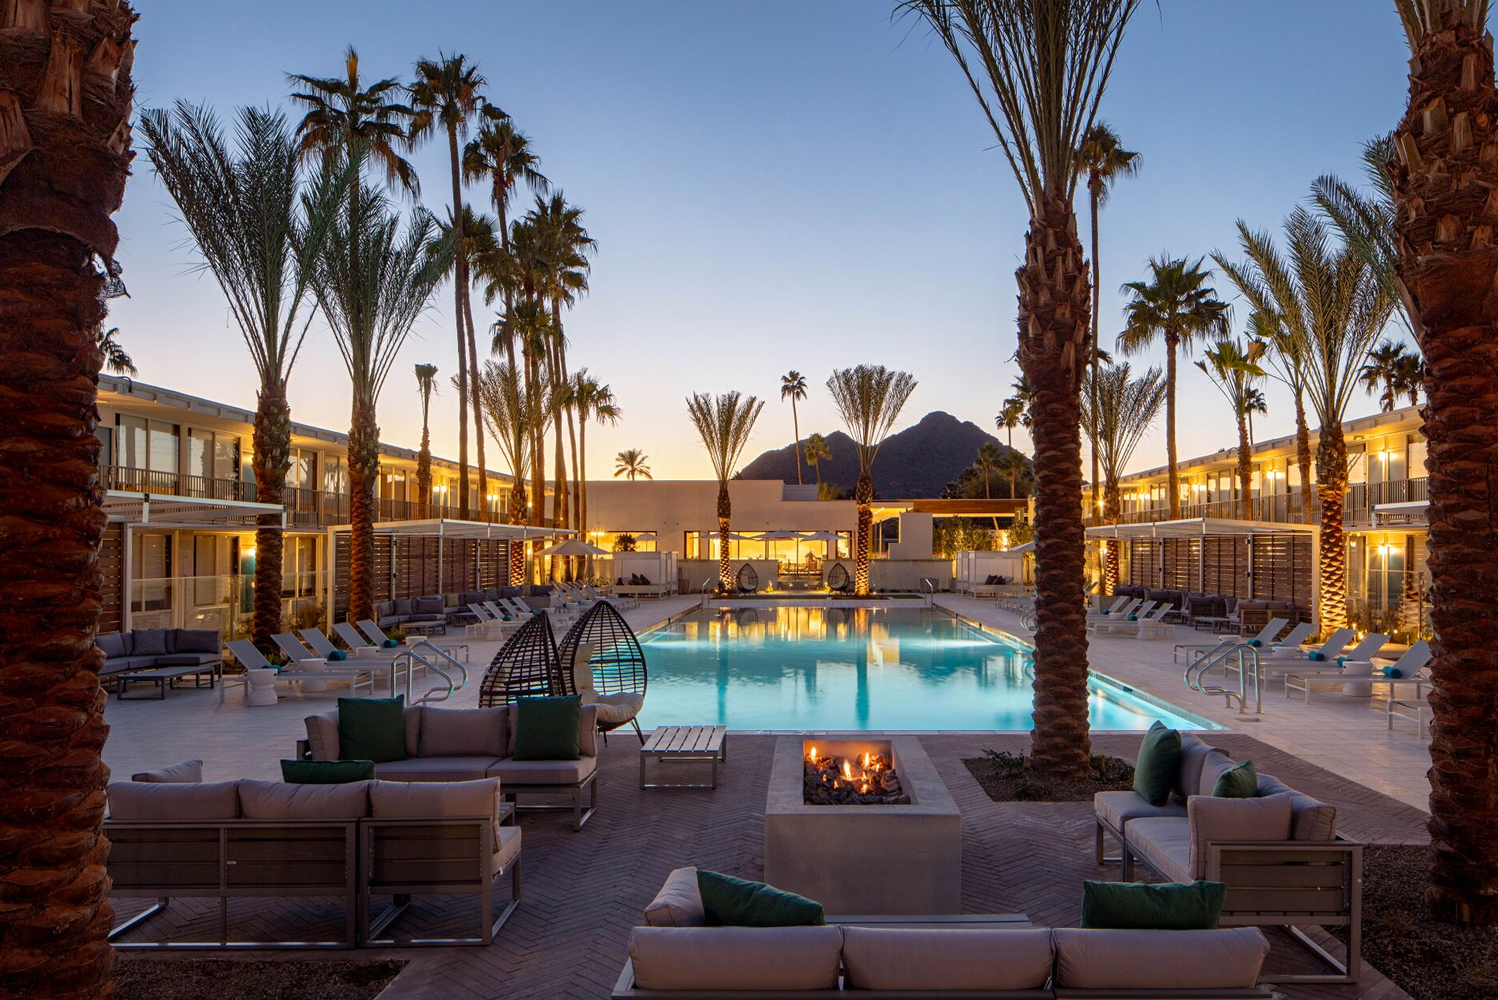 Hotel Adeline's 3,000-square-foot zero edge pool is the centerpiece of the property.